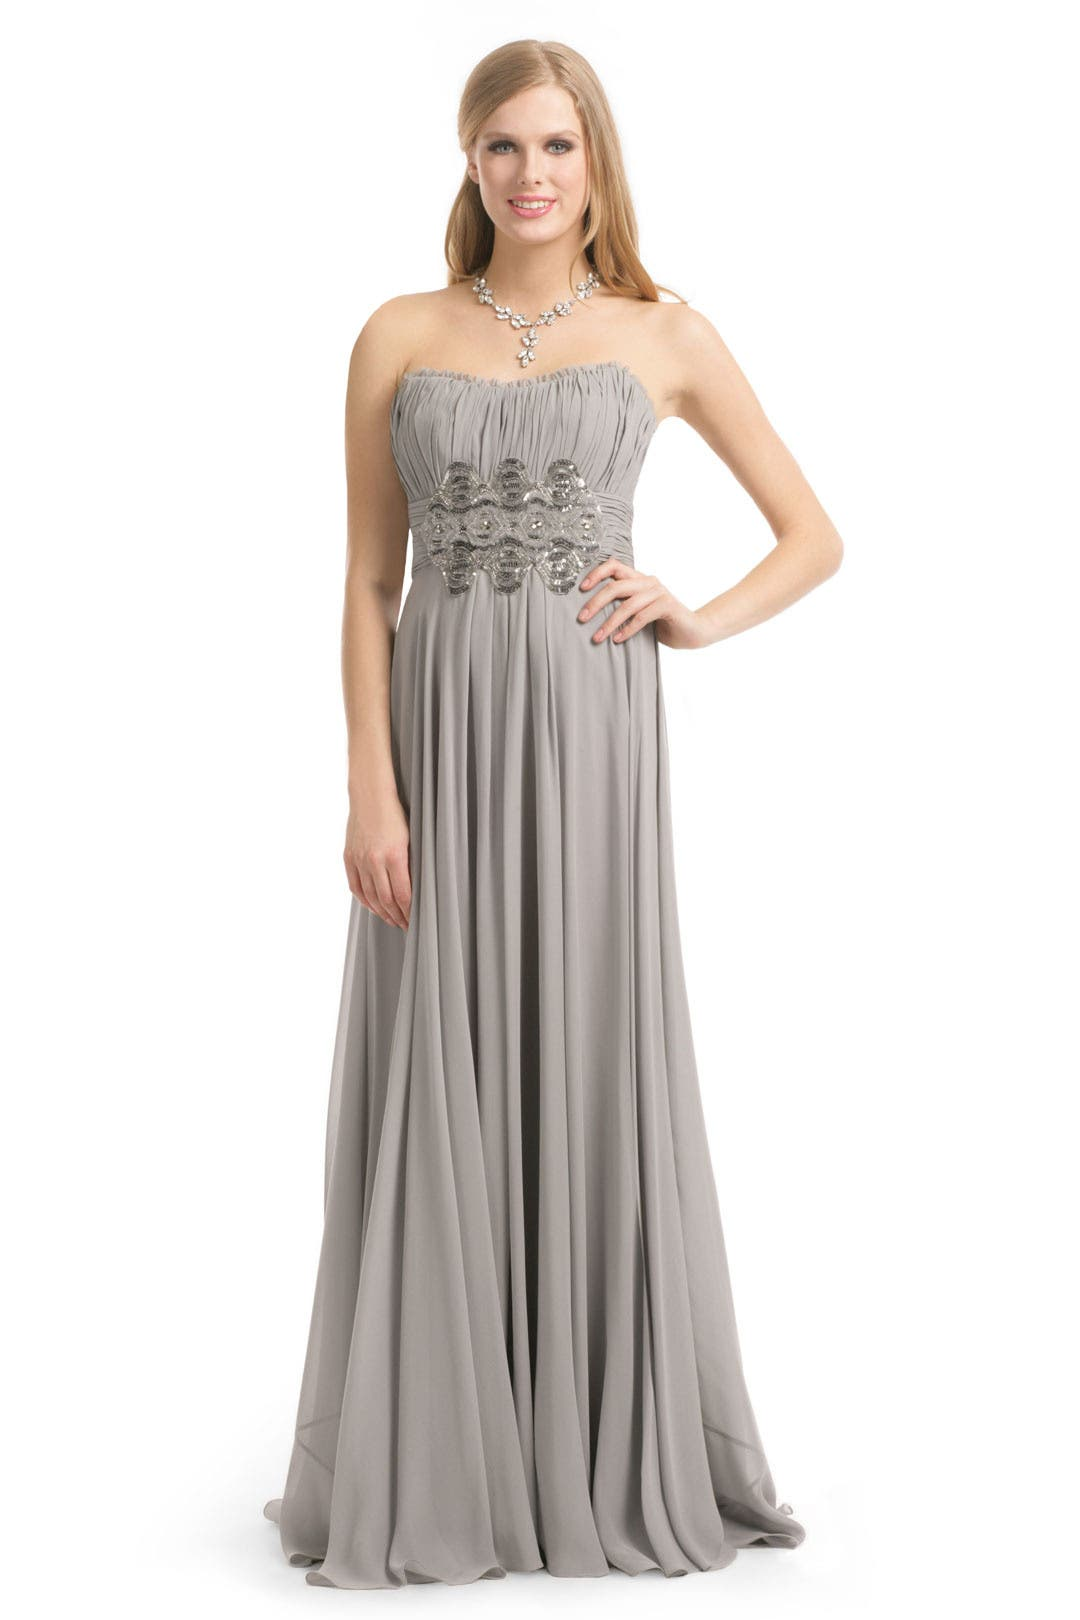 It\'s Elemental Gown by Theia for $57 | Rent the Runway